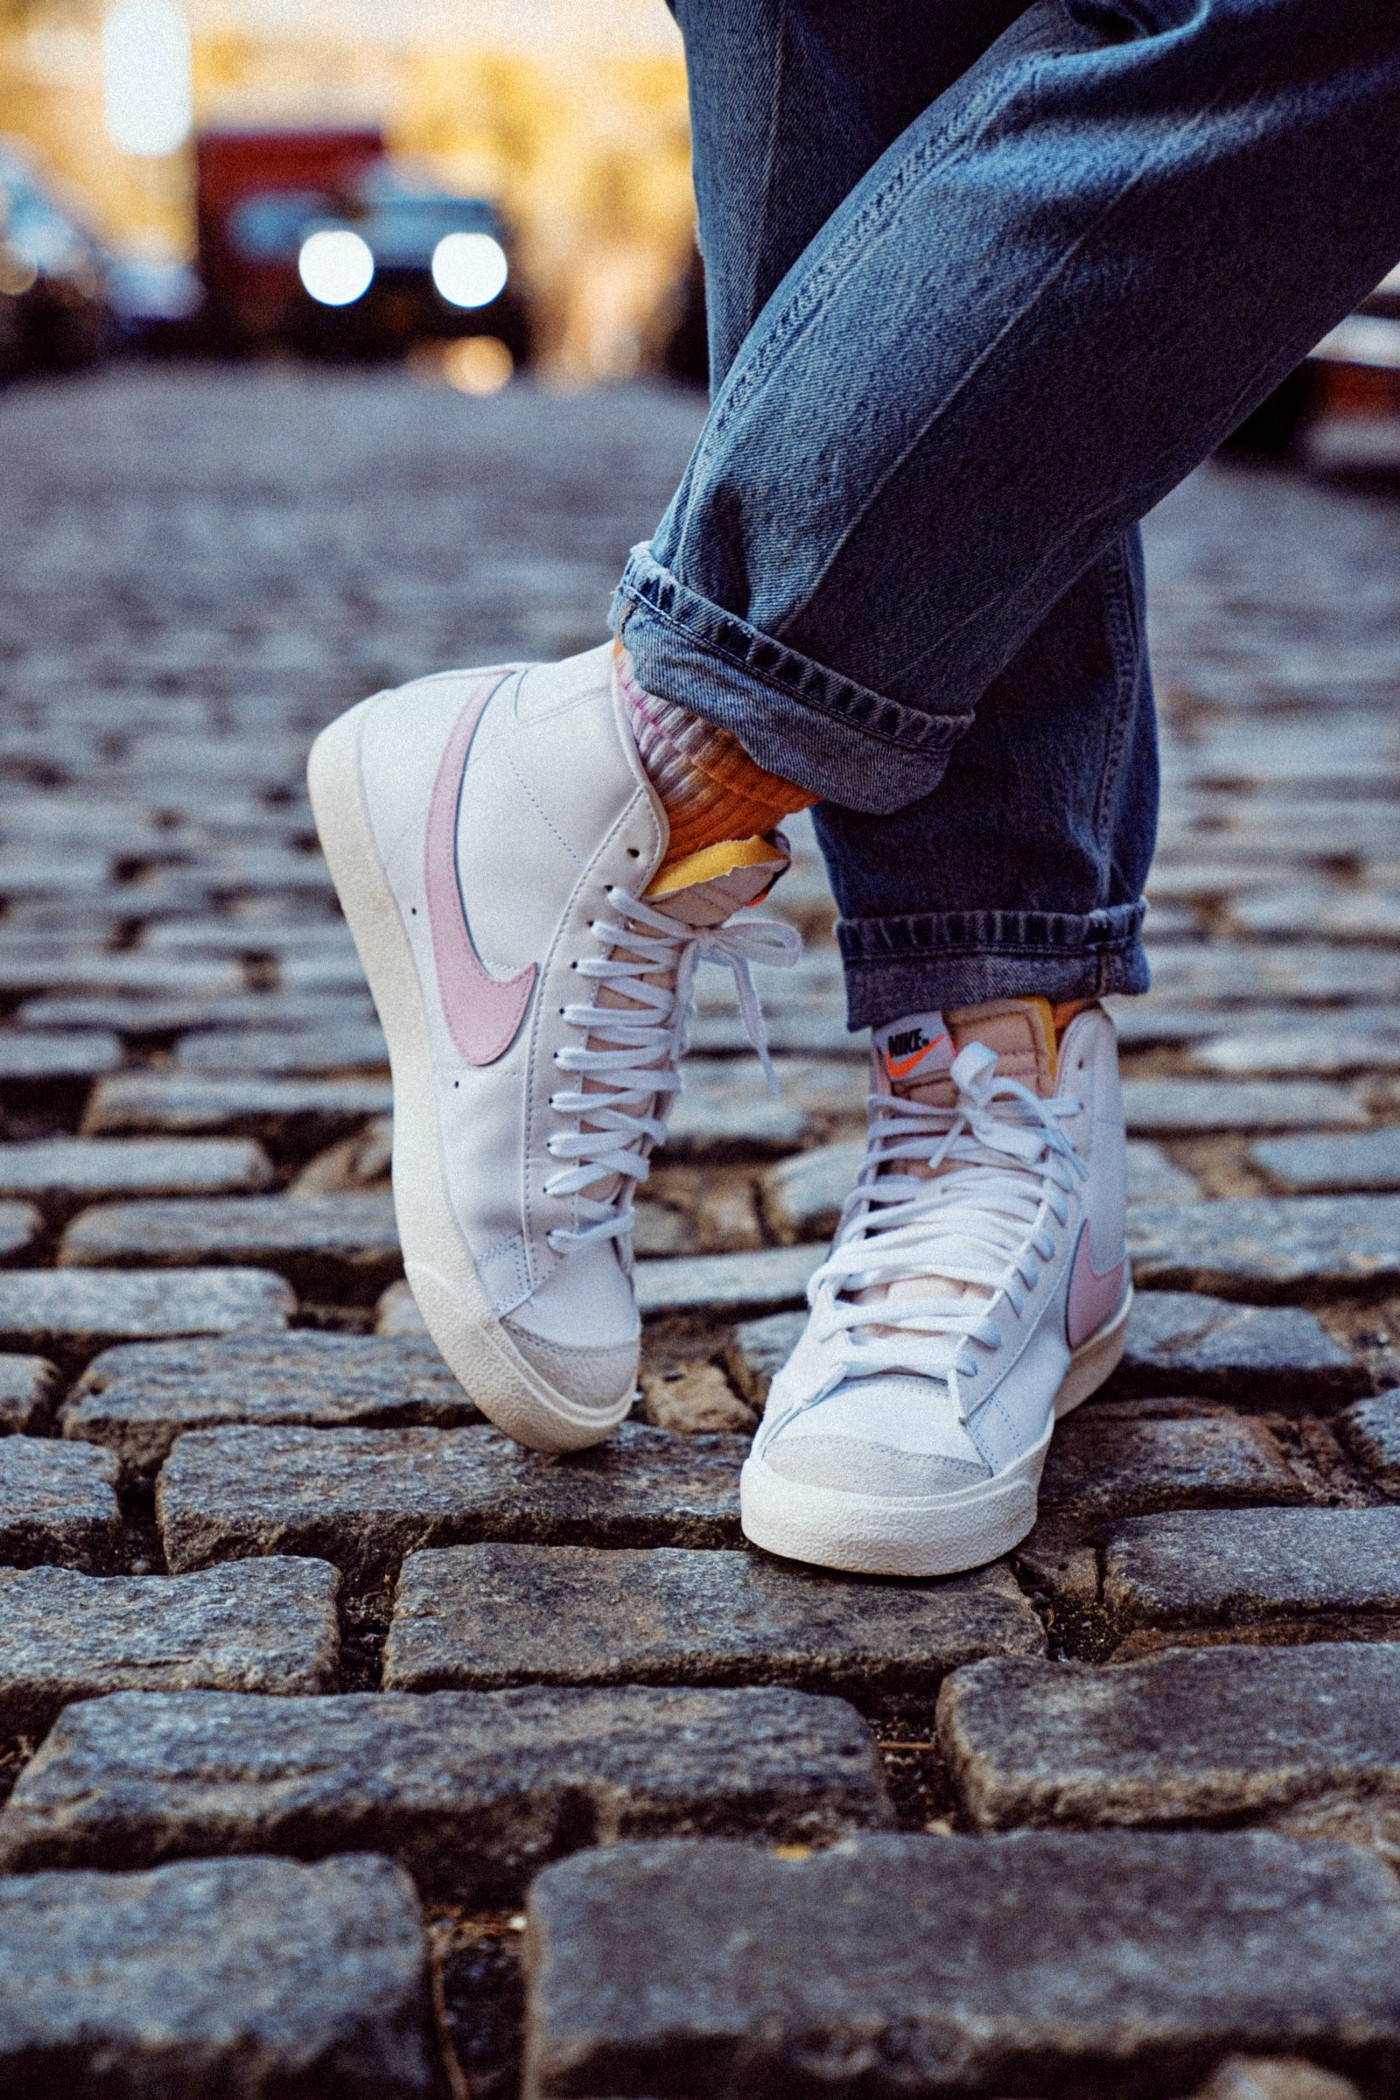 Person wearing white Nikes with a pink swoosh on them.